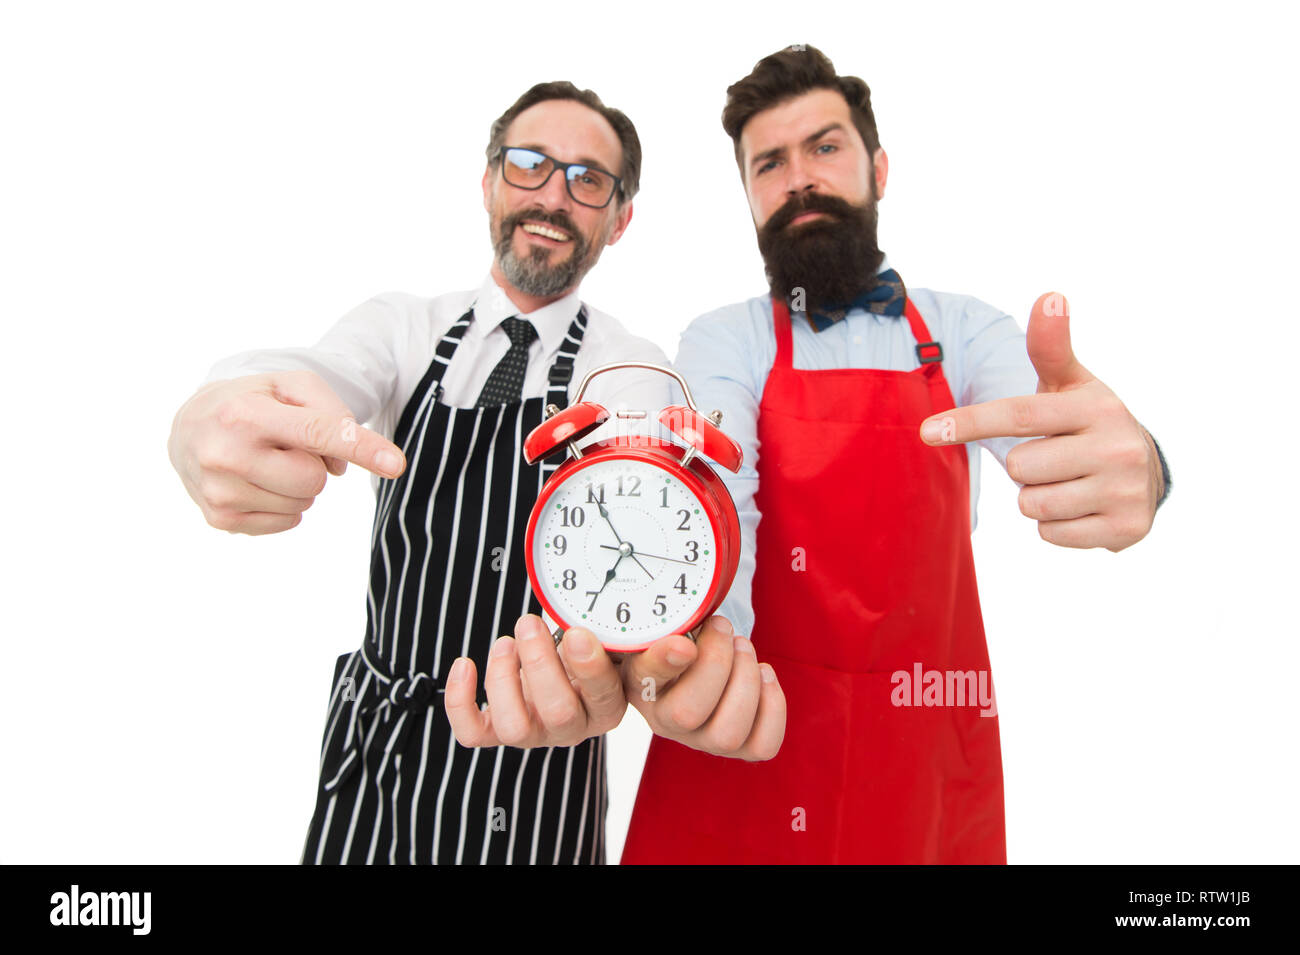 Time to cook. Men pointing at alarm clock. Man bearded hipster and mature chef apron white background. Cook dinner. We going to cook right now. Friends colleagues start cooking just on time. - Stock Image